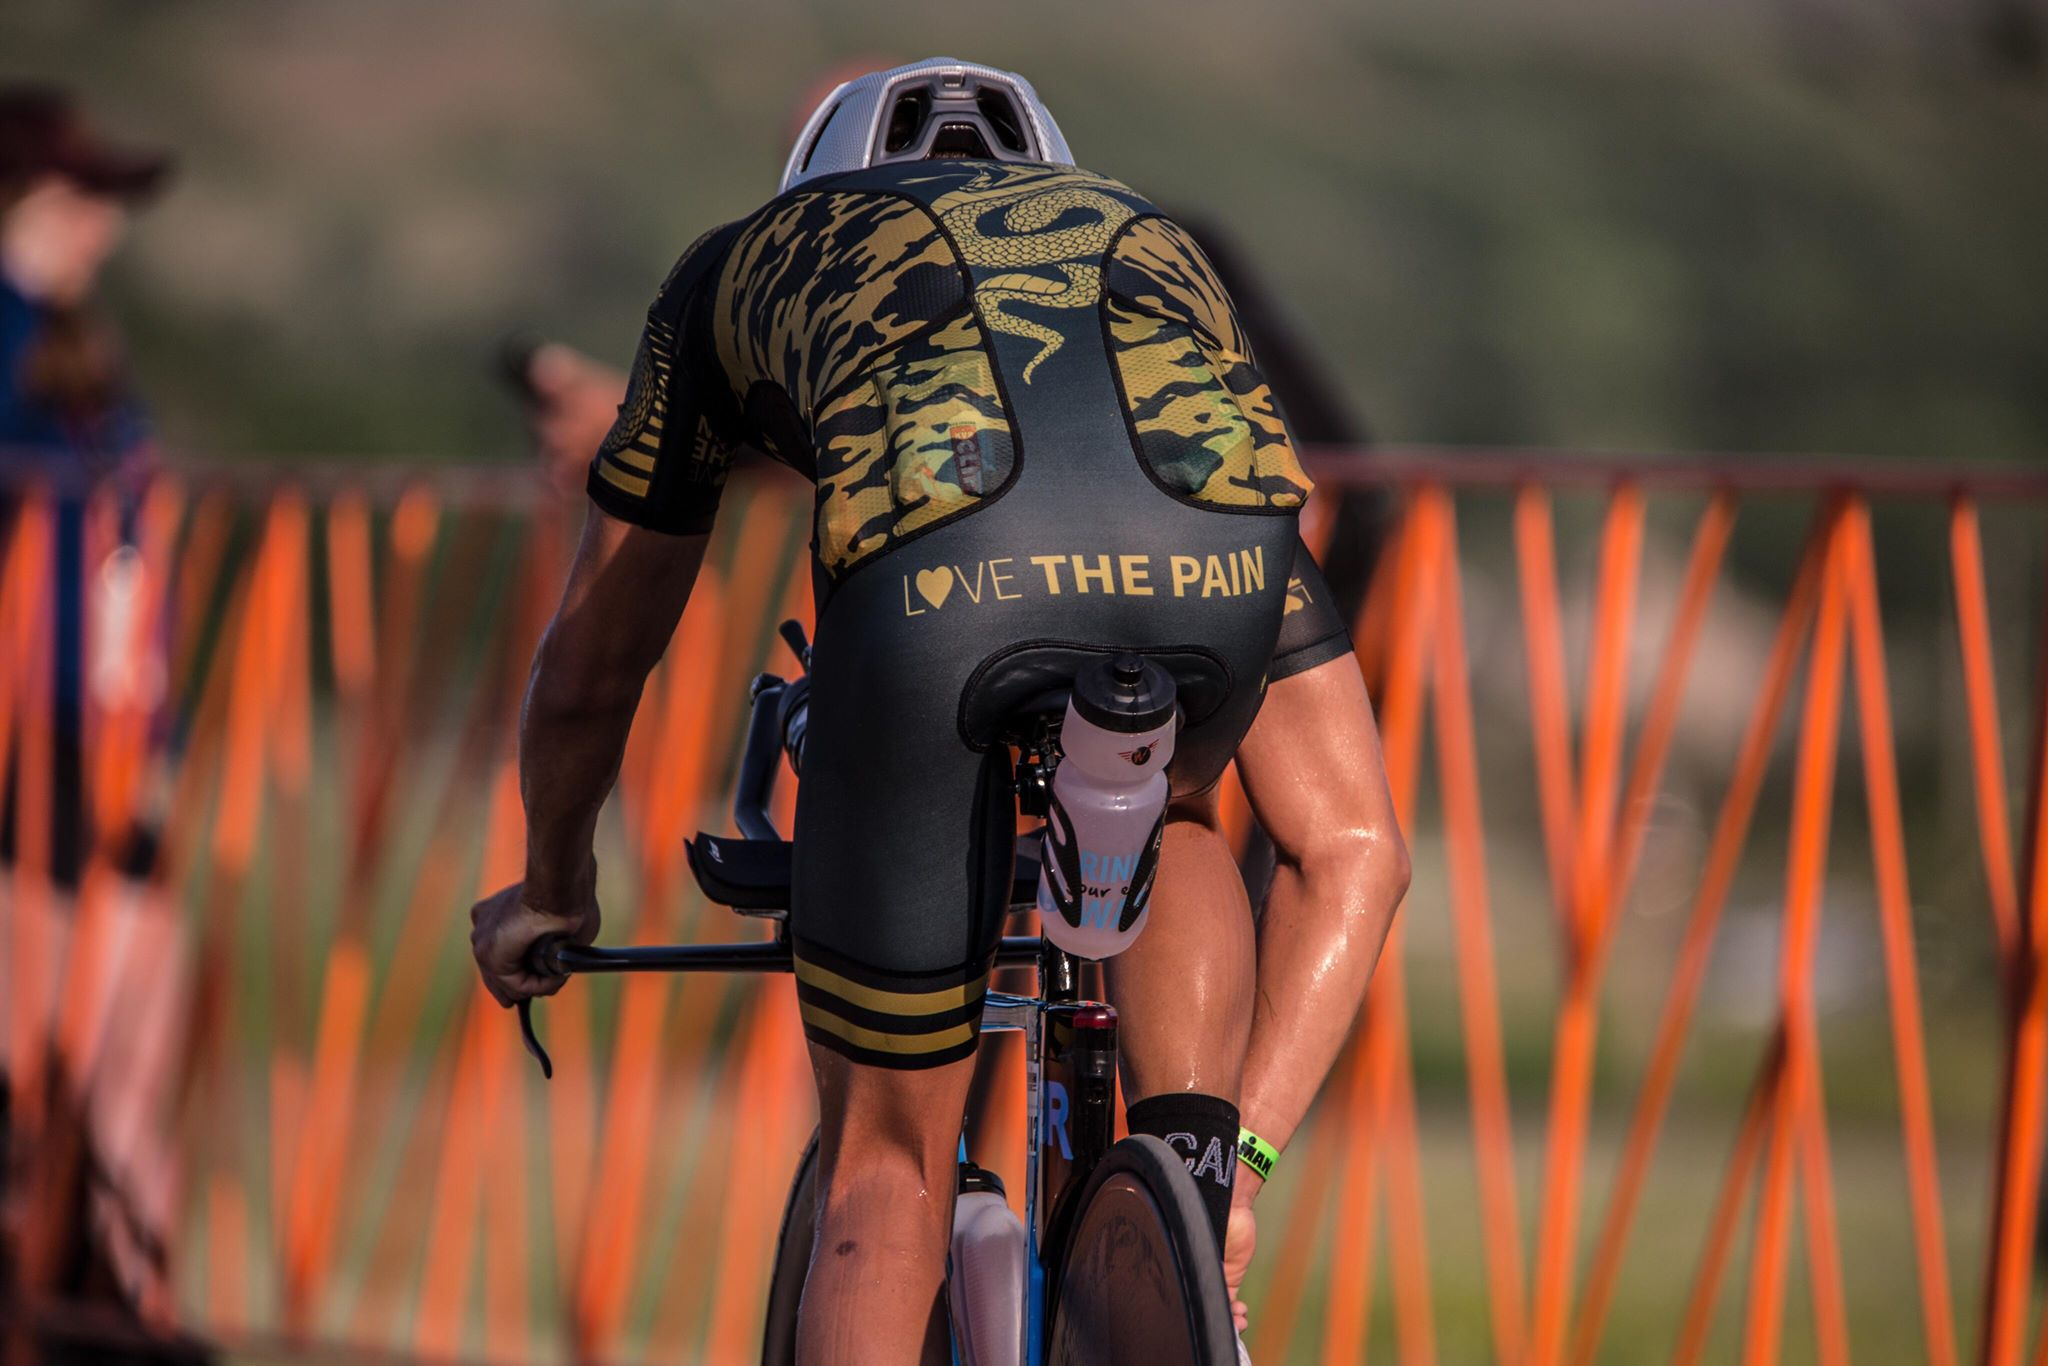 Coach_Terry_Wilson_Pursuit_of_The_Perfect_Race_IRONMAN_Troy_Team_Sirius_Boulder_Kona_Slot_3_Bike.jpg